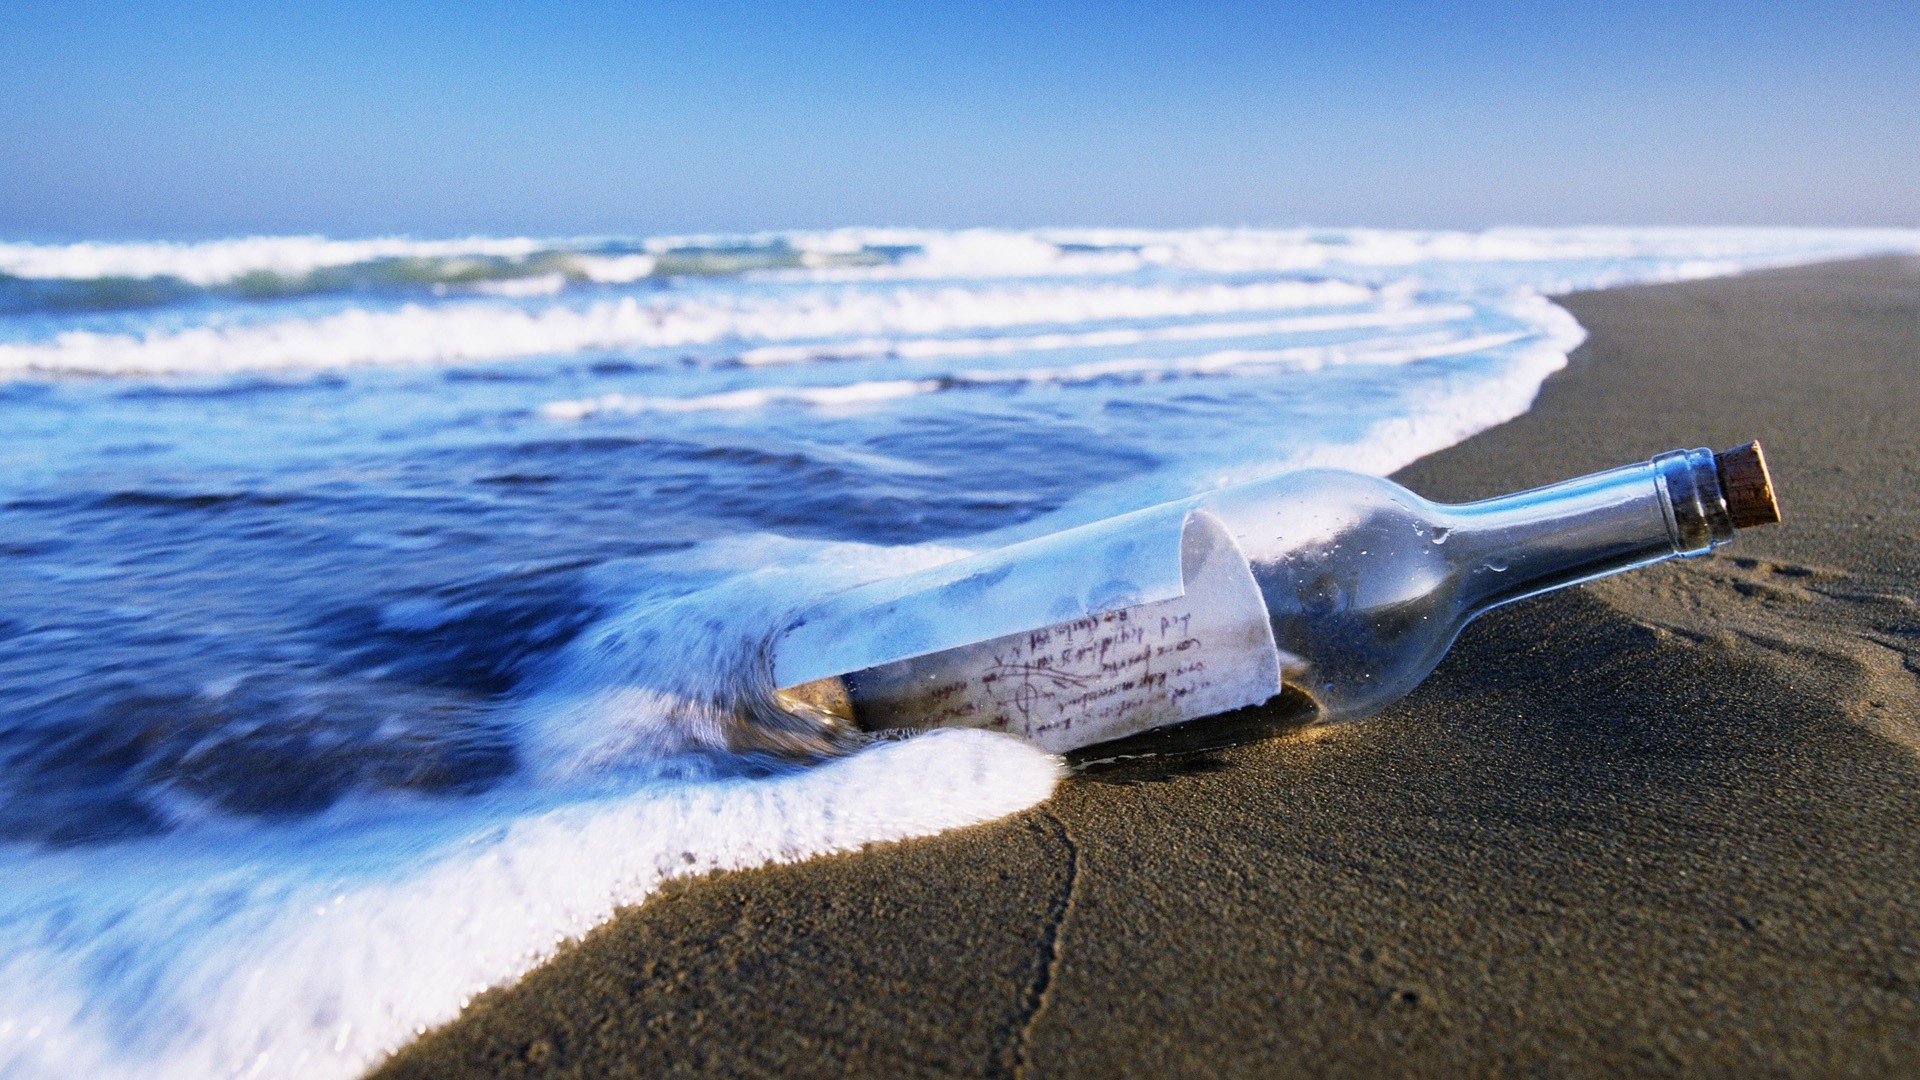 A note in a bottle thrown onto a beach by the sea